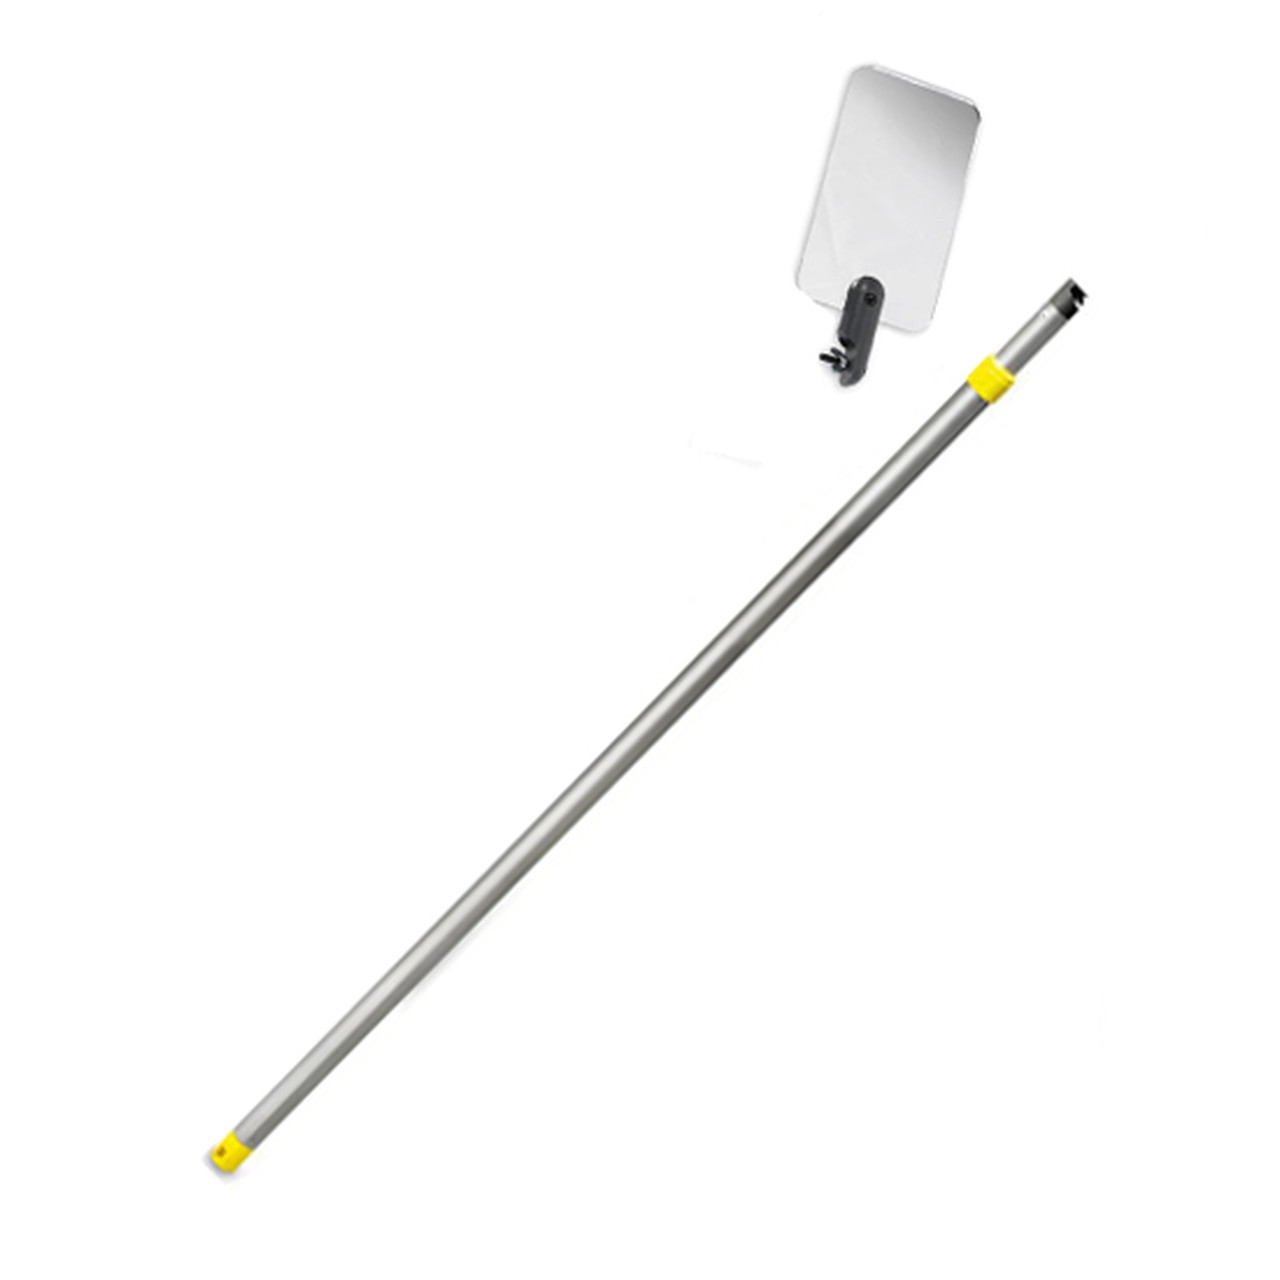 Inspection Mirror Telescoping 2 ft - 4 ft Pole with 3.5 in x 6 in Acrylic Mirror (Home Inspection, etc)